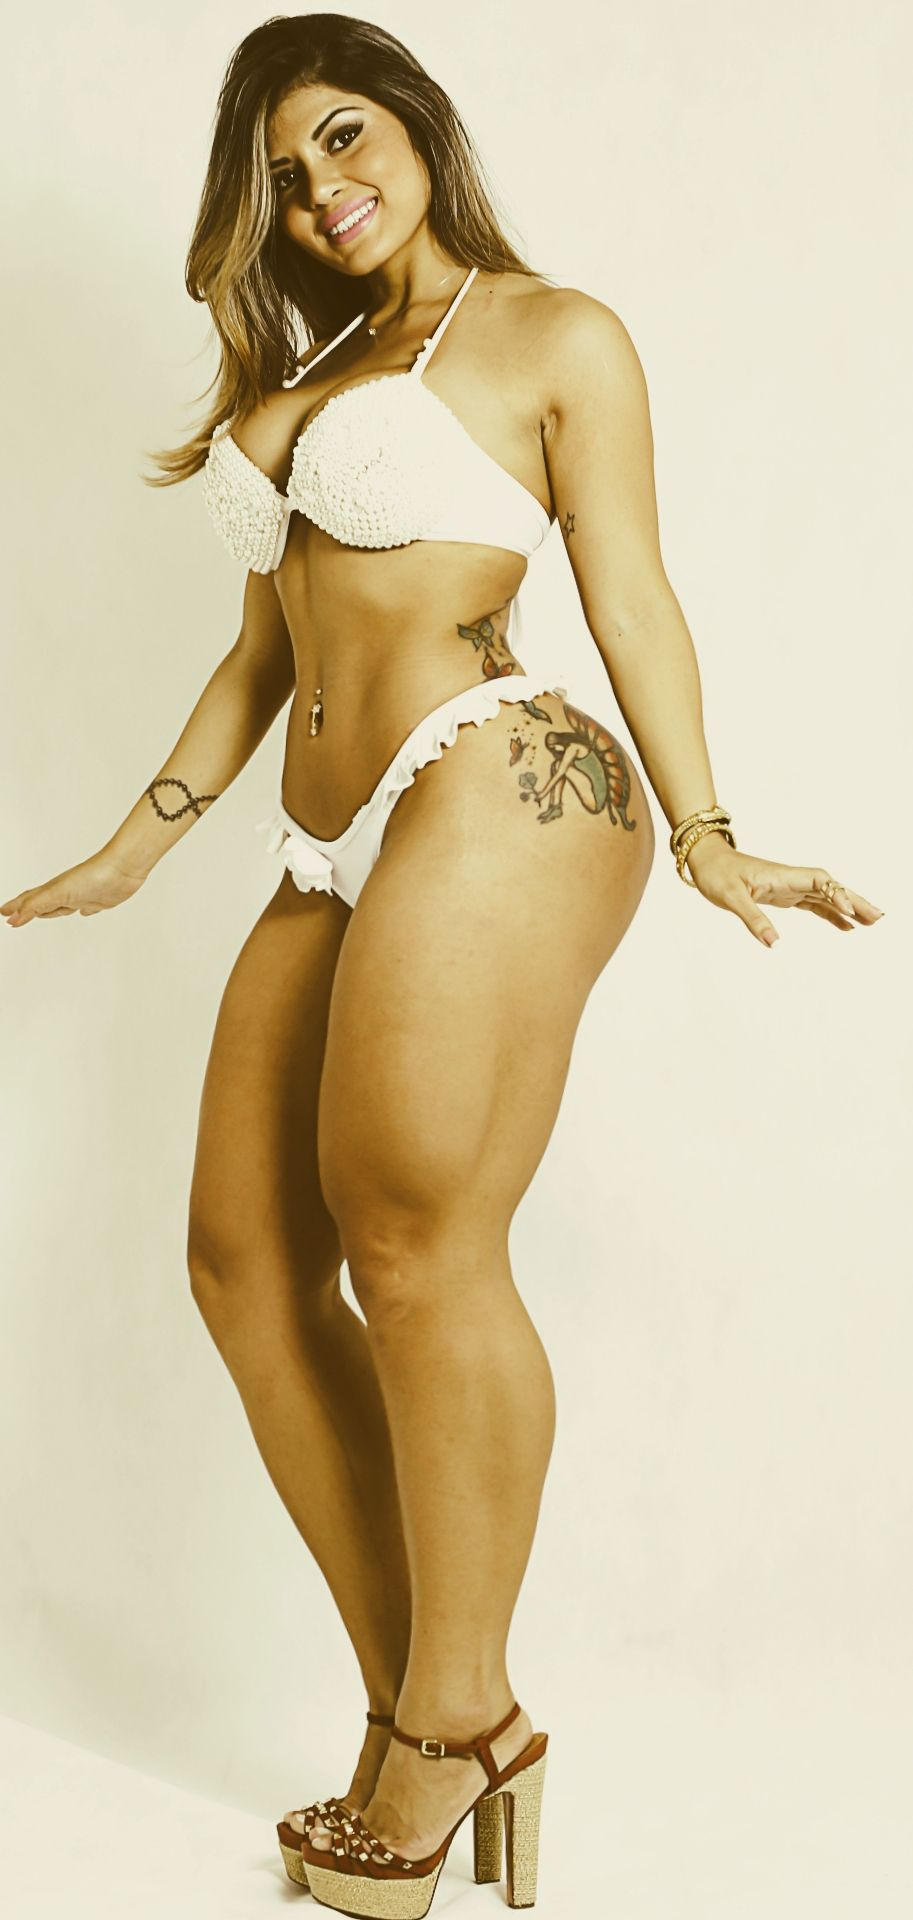 Thick legs foxy | Hot images)